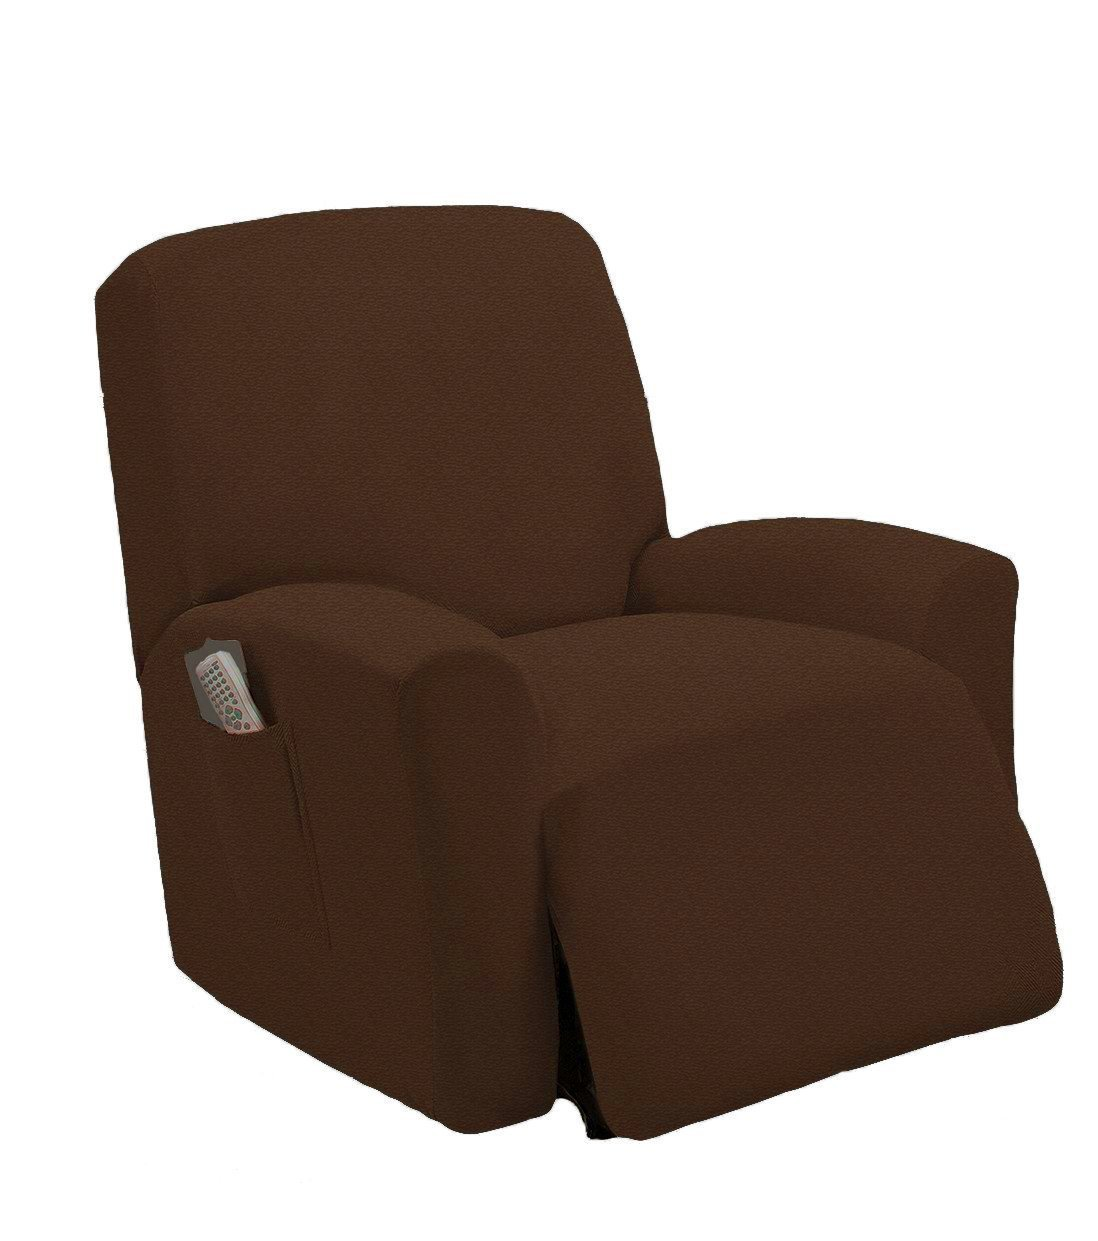 Orly'sDream One piece Stretch Recliner Chair Furniture Slipcovers with Remote Pocket Fit most Recliner Chairs (Chocolate) by Orly'sDream